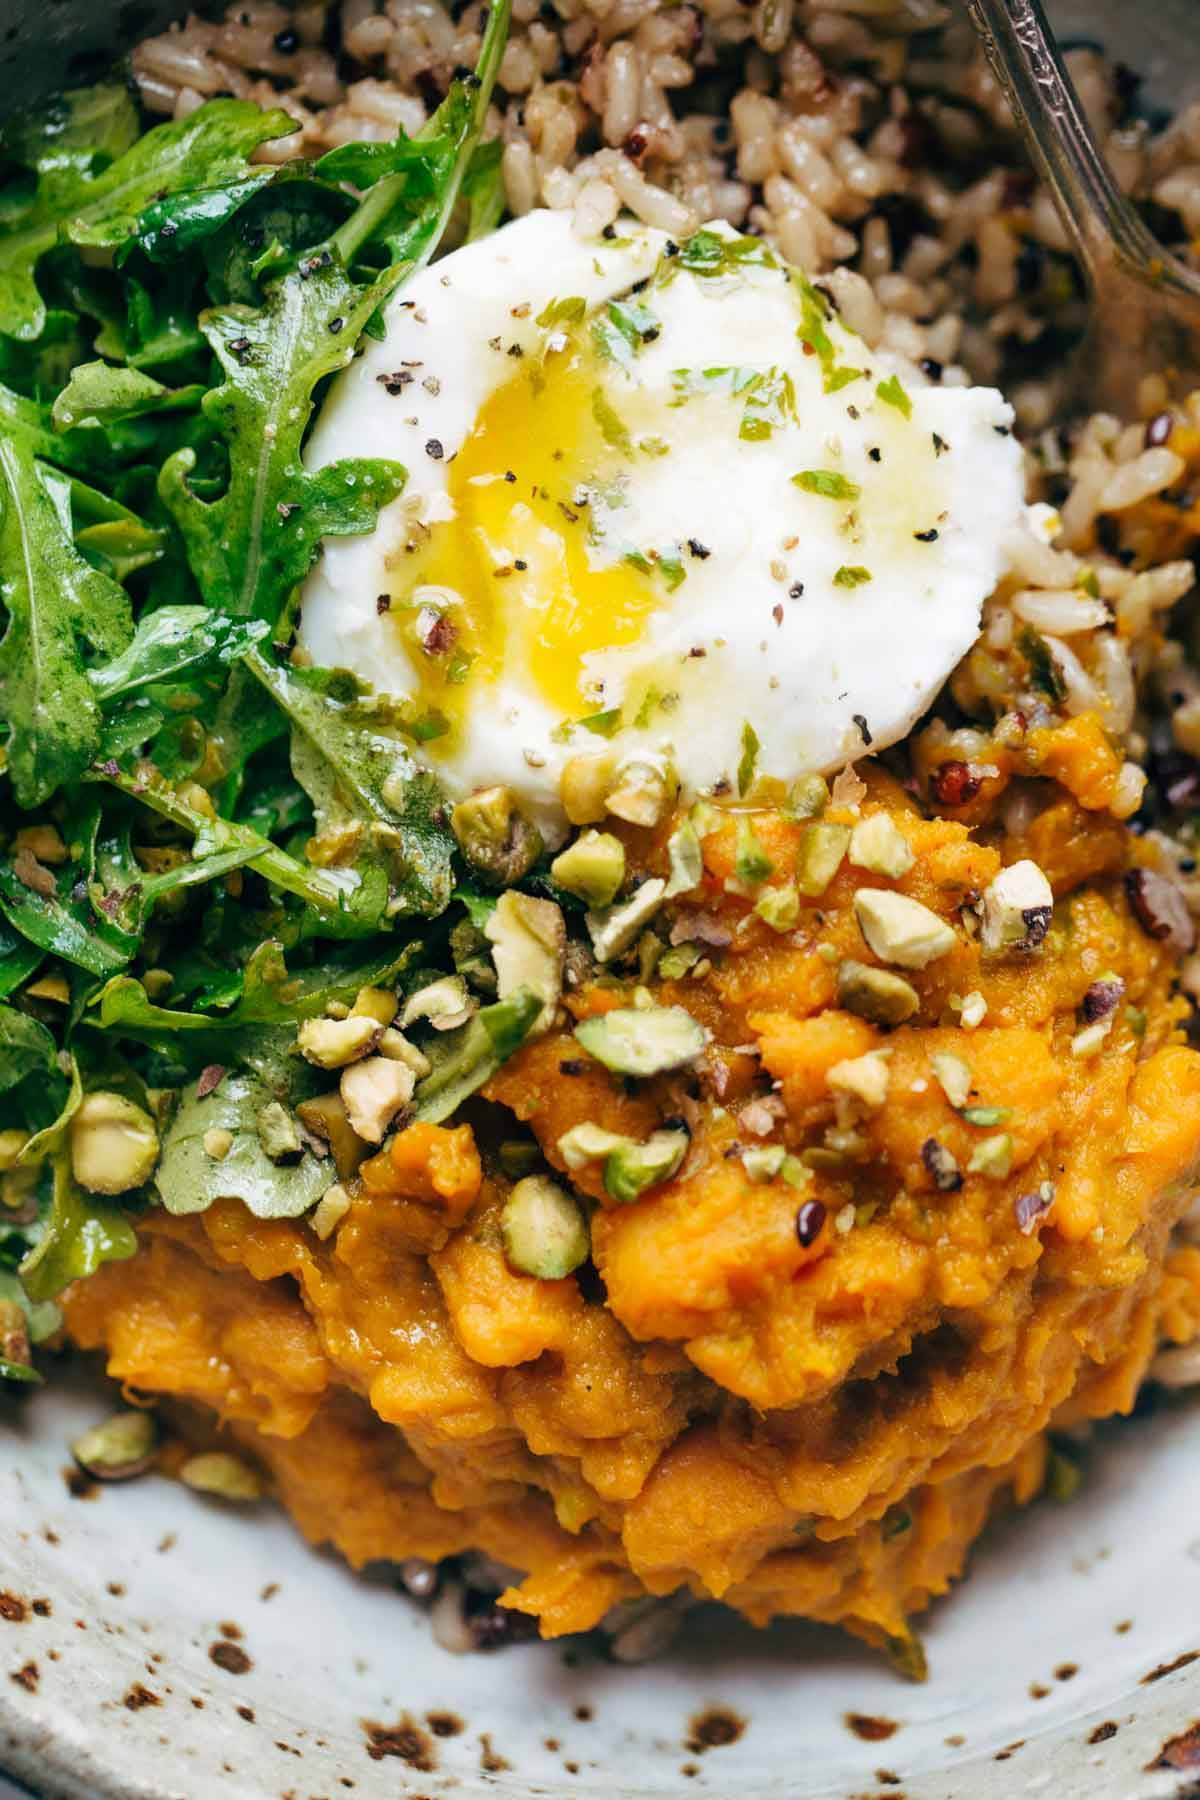 sweet potatoes with brown rice and an egg in a bowl with a fork